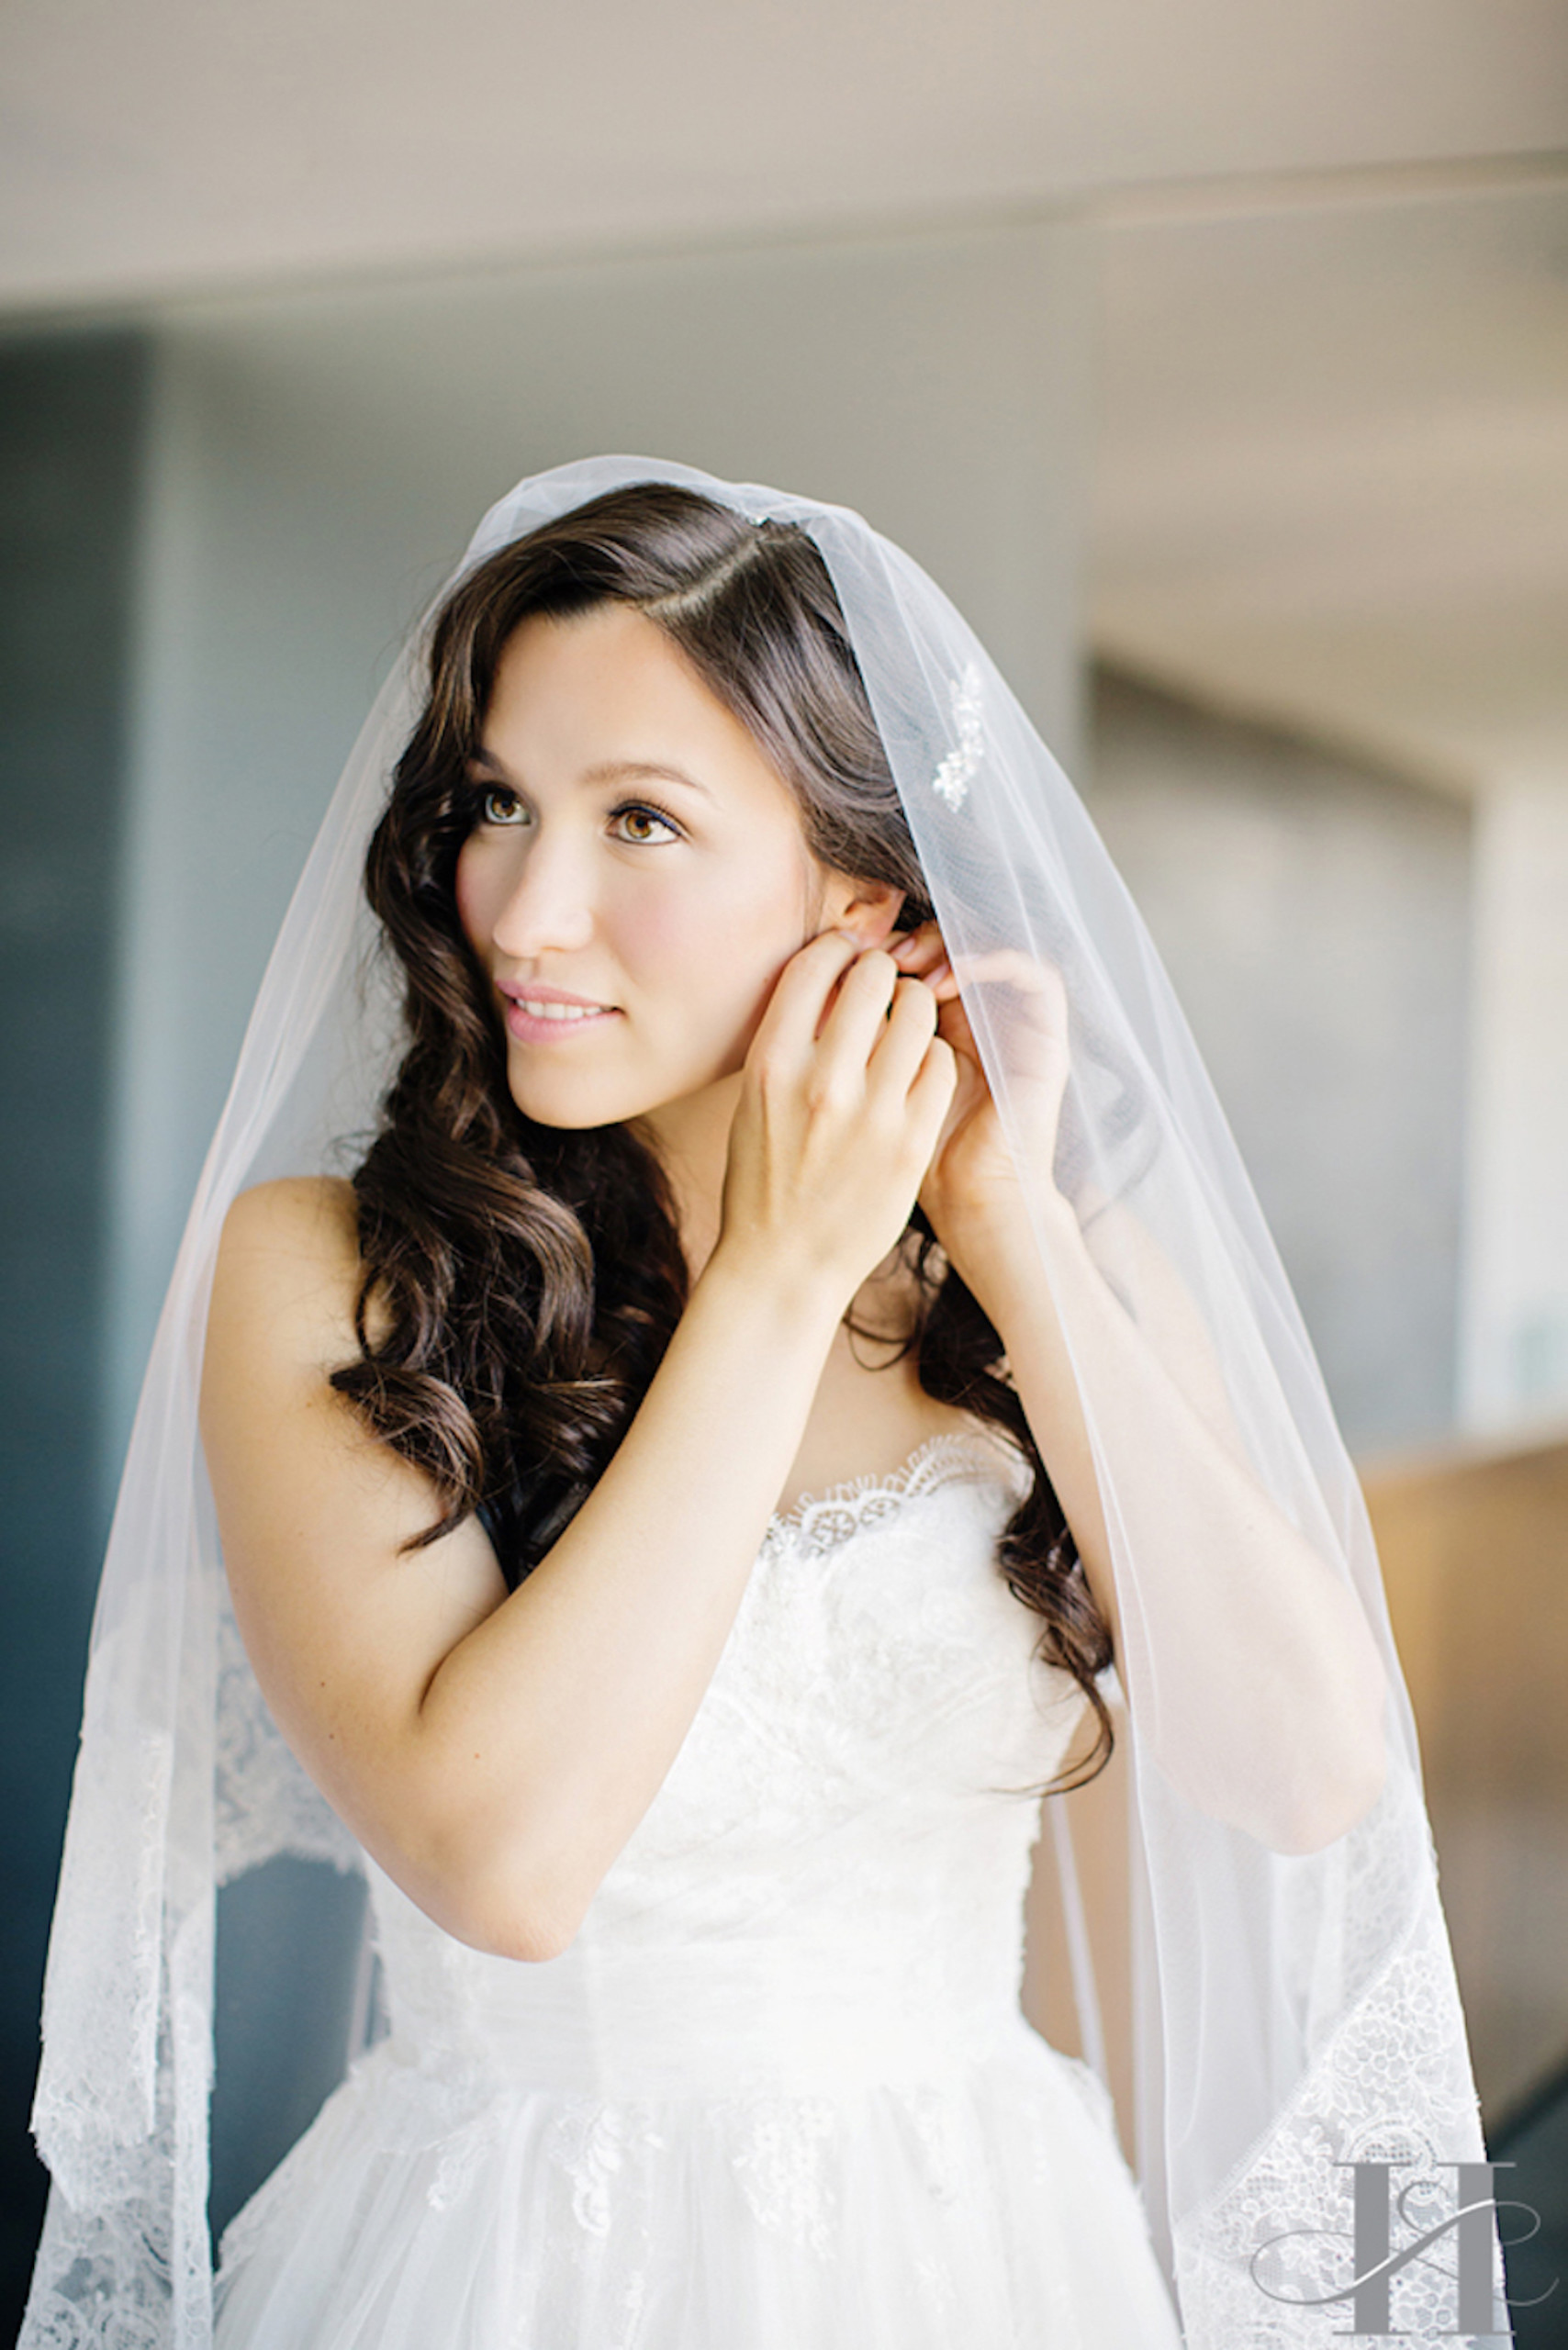 Beautiful brunette bride with very soft chic makeup and long Hollywood waves with lace veil in SoHo, New York City